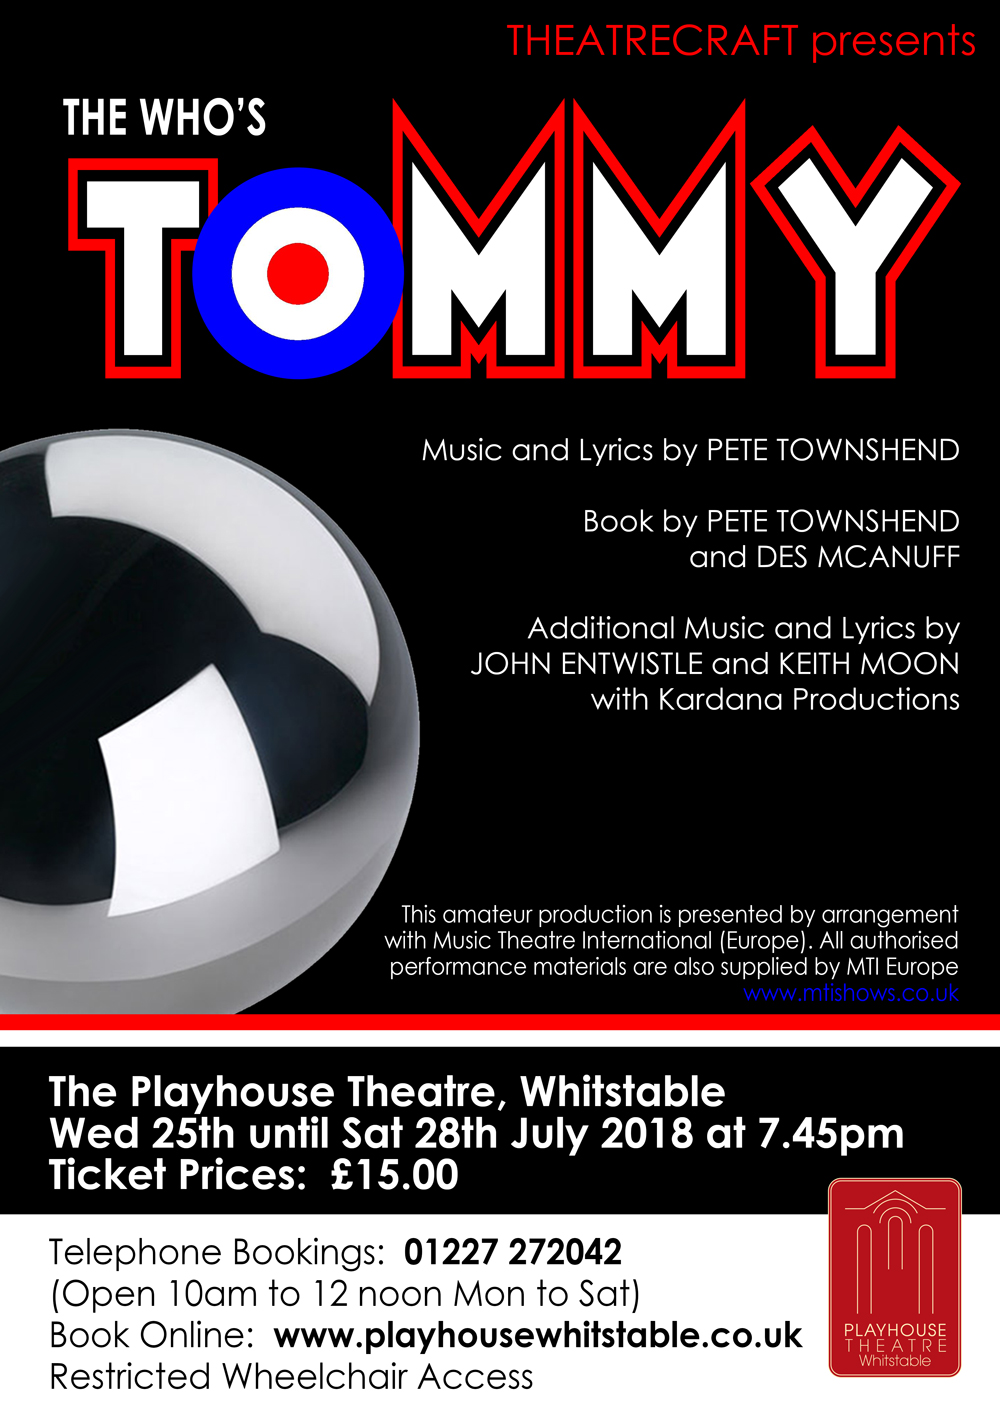 Theatrecraft Herne Bay presents the musical The Who's Tommy at the Whitstable Playhouse